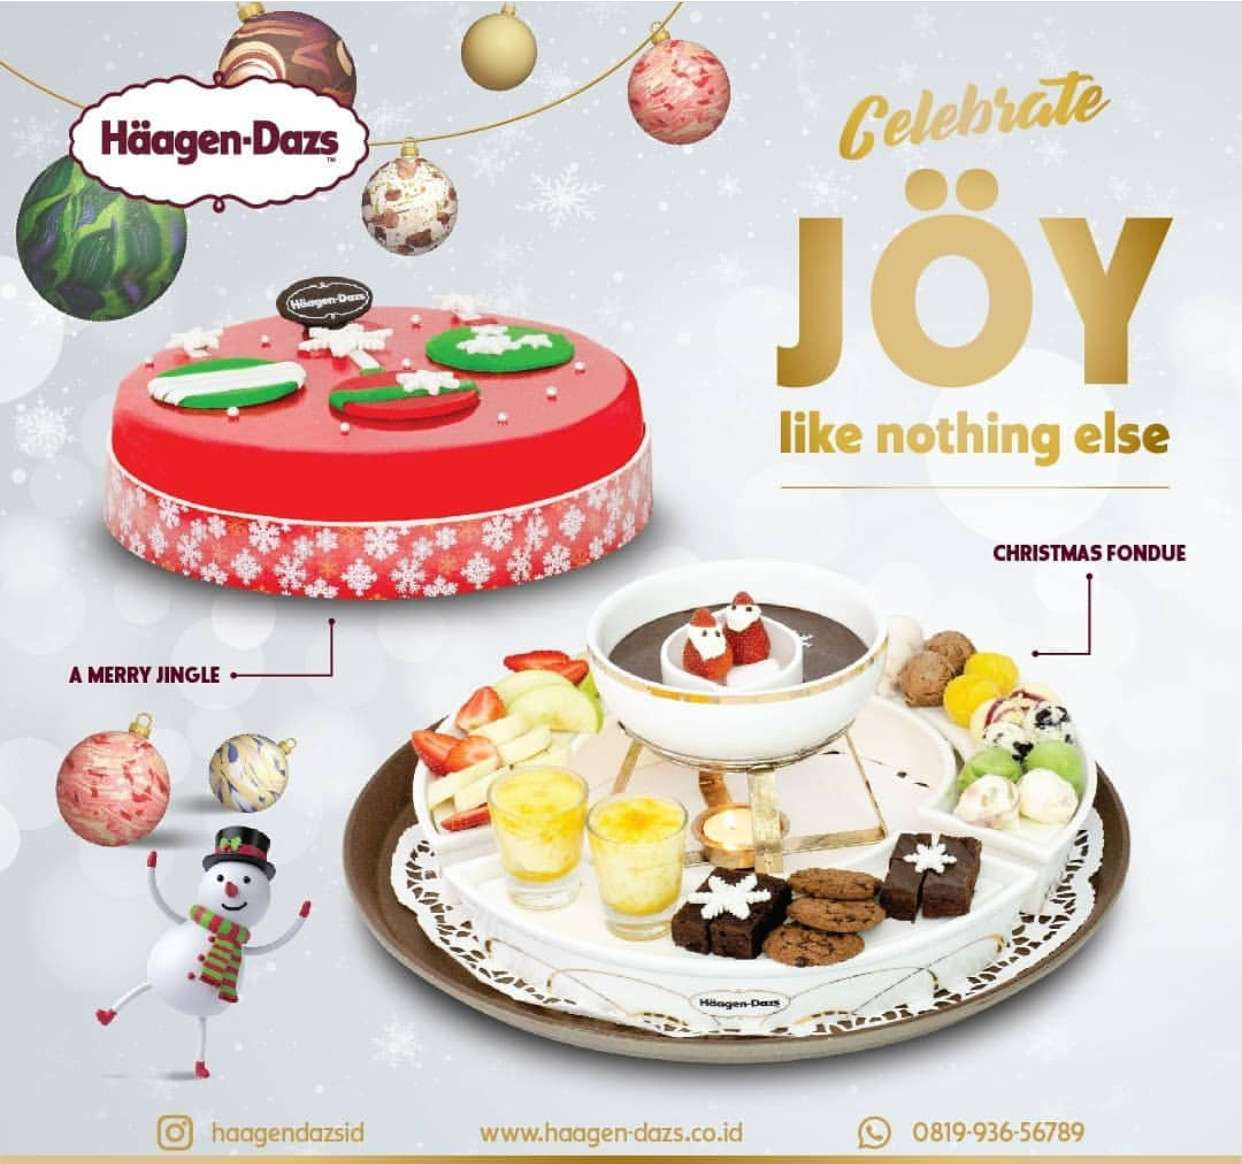 Haagen-dazs Christmas Ice Cream Cake Early Bird Offer Discount 25% off